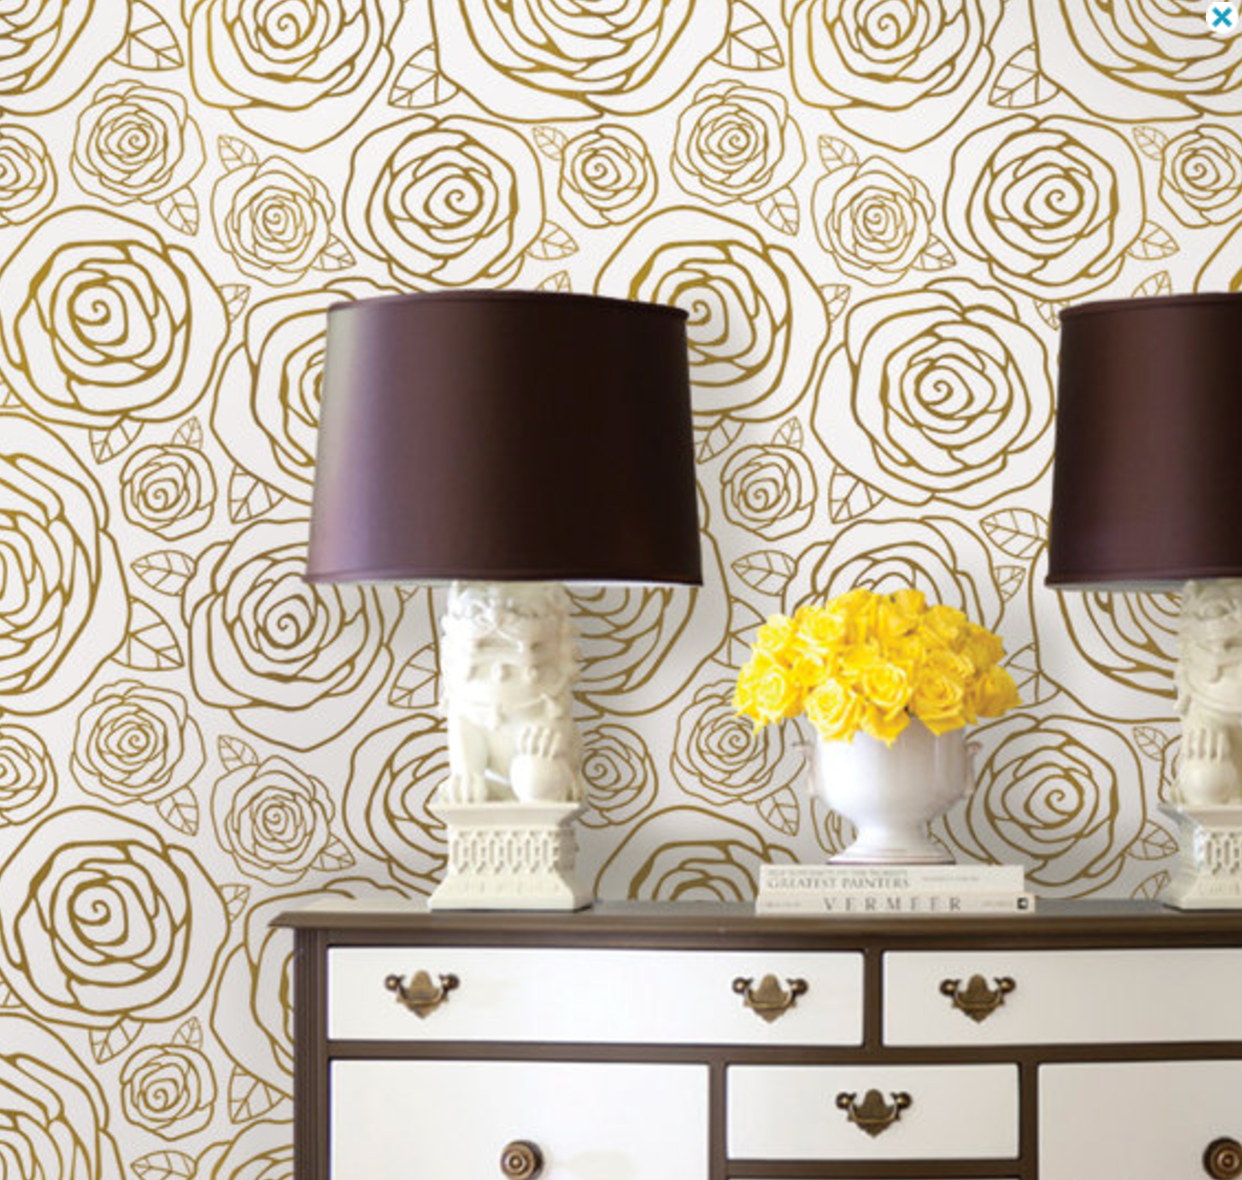 Gold Roses Removable Wallpaper Rose Gold Wallpaper Fabric Wallpaper Gold Wallpaper